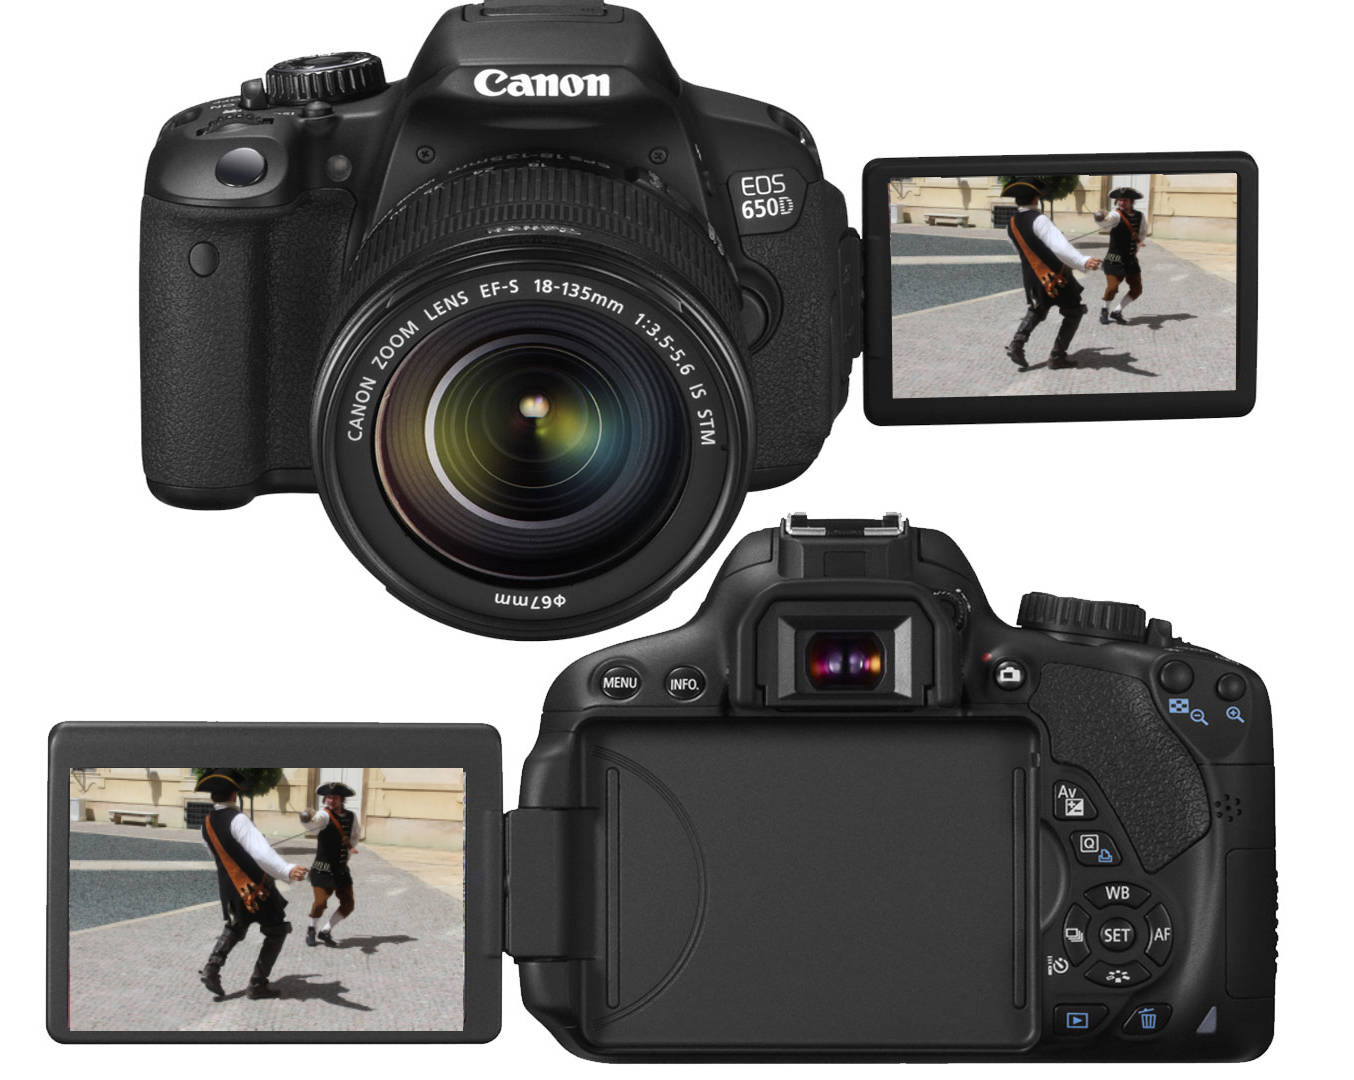 canon digital slr cameras that existed in 2013 smart tech review. Black Bedroom Furniture Sets. Home Design Ideas